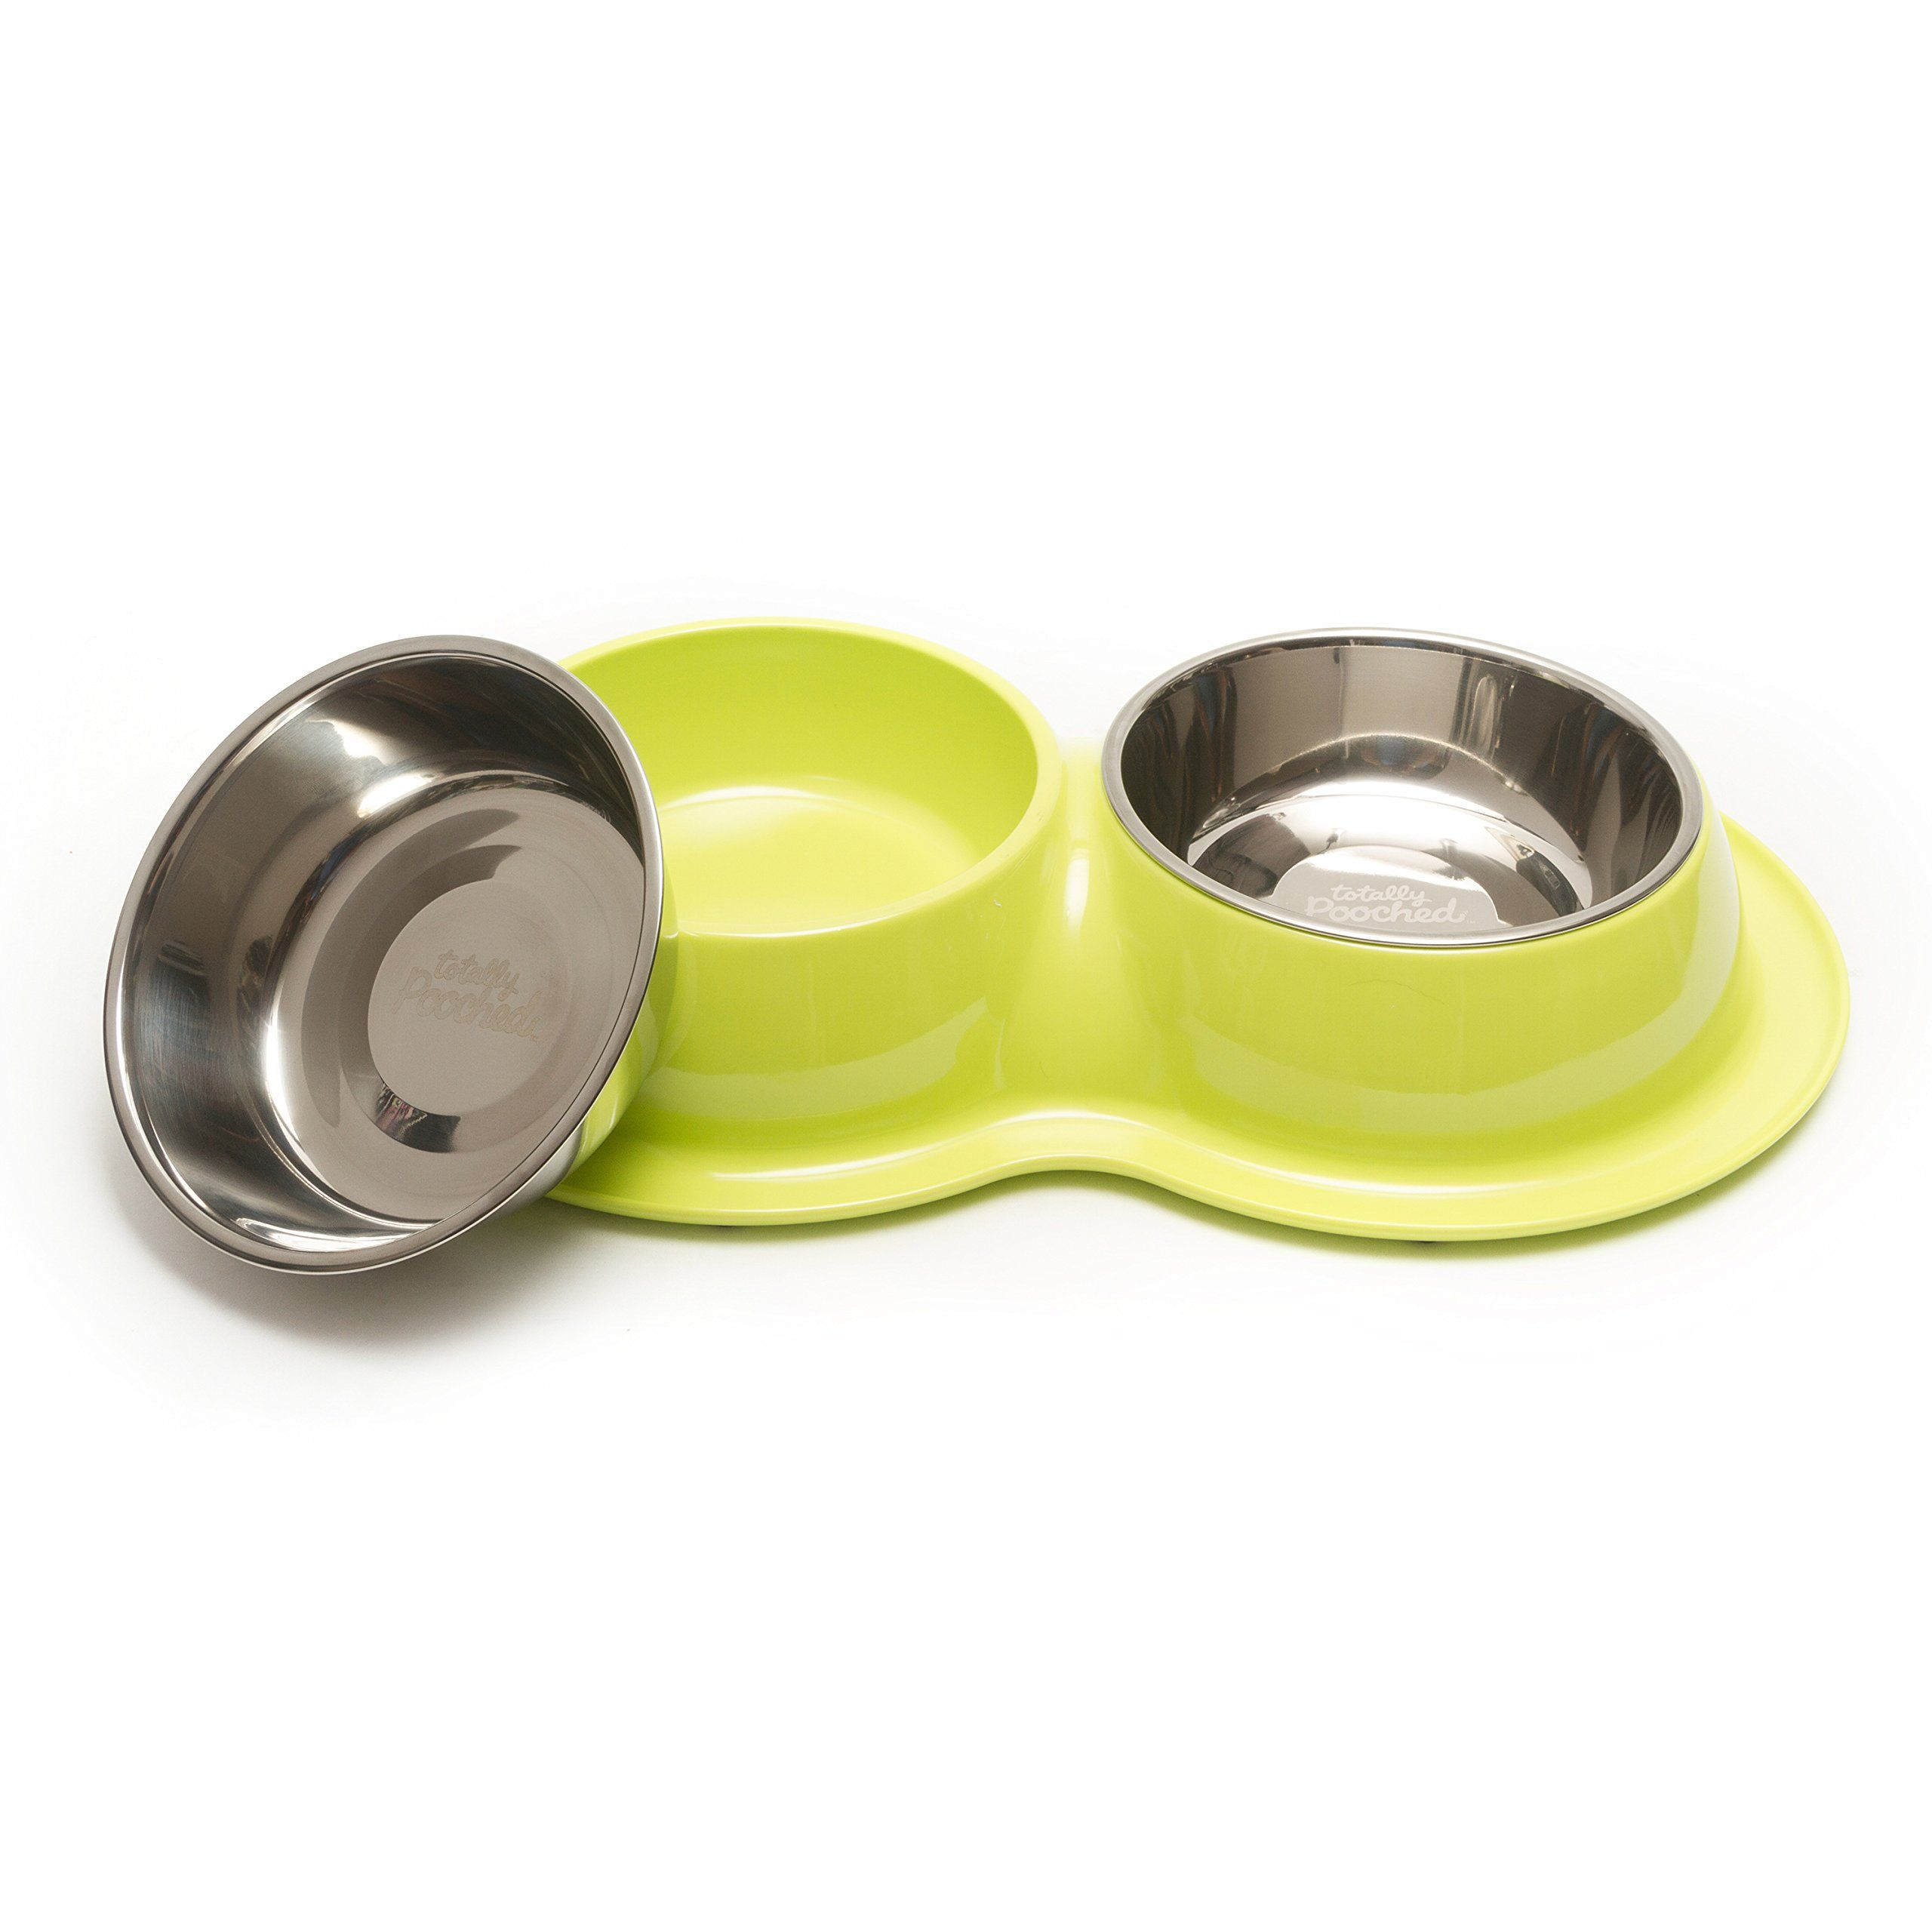 Totally Pooched Elevated Feeder with Stainless Steel Bowls